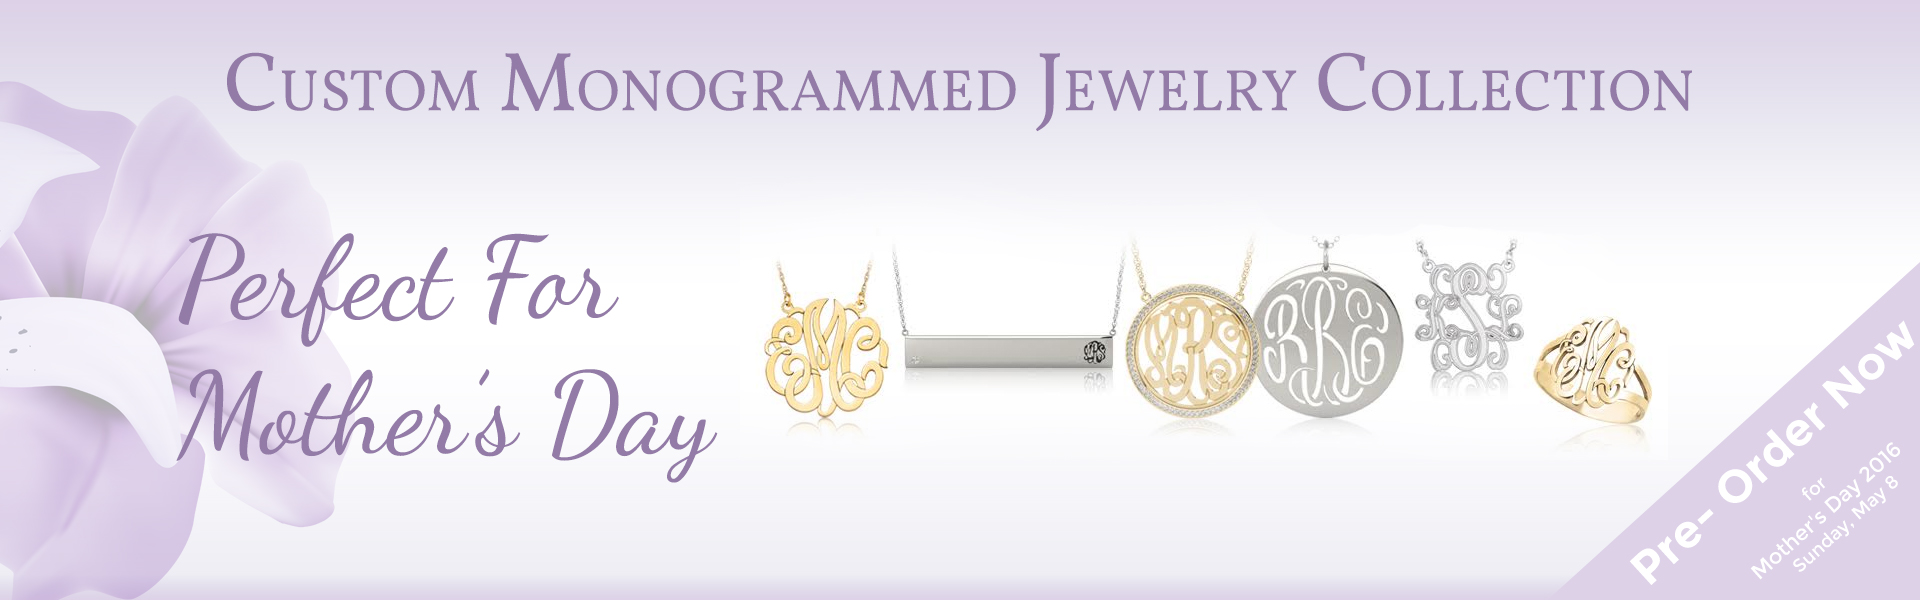 Custom  Monogrammed Jewelry Collection